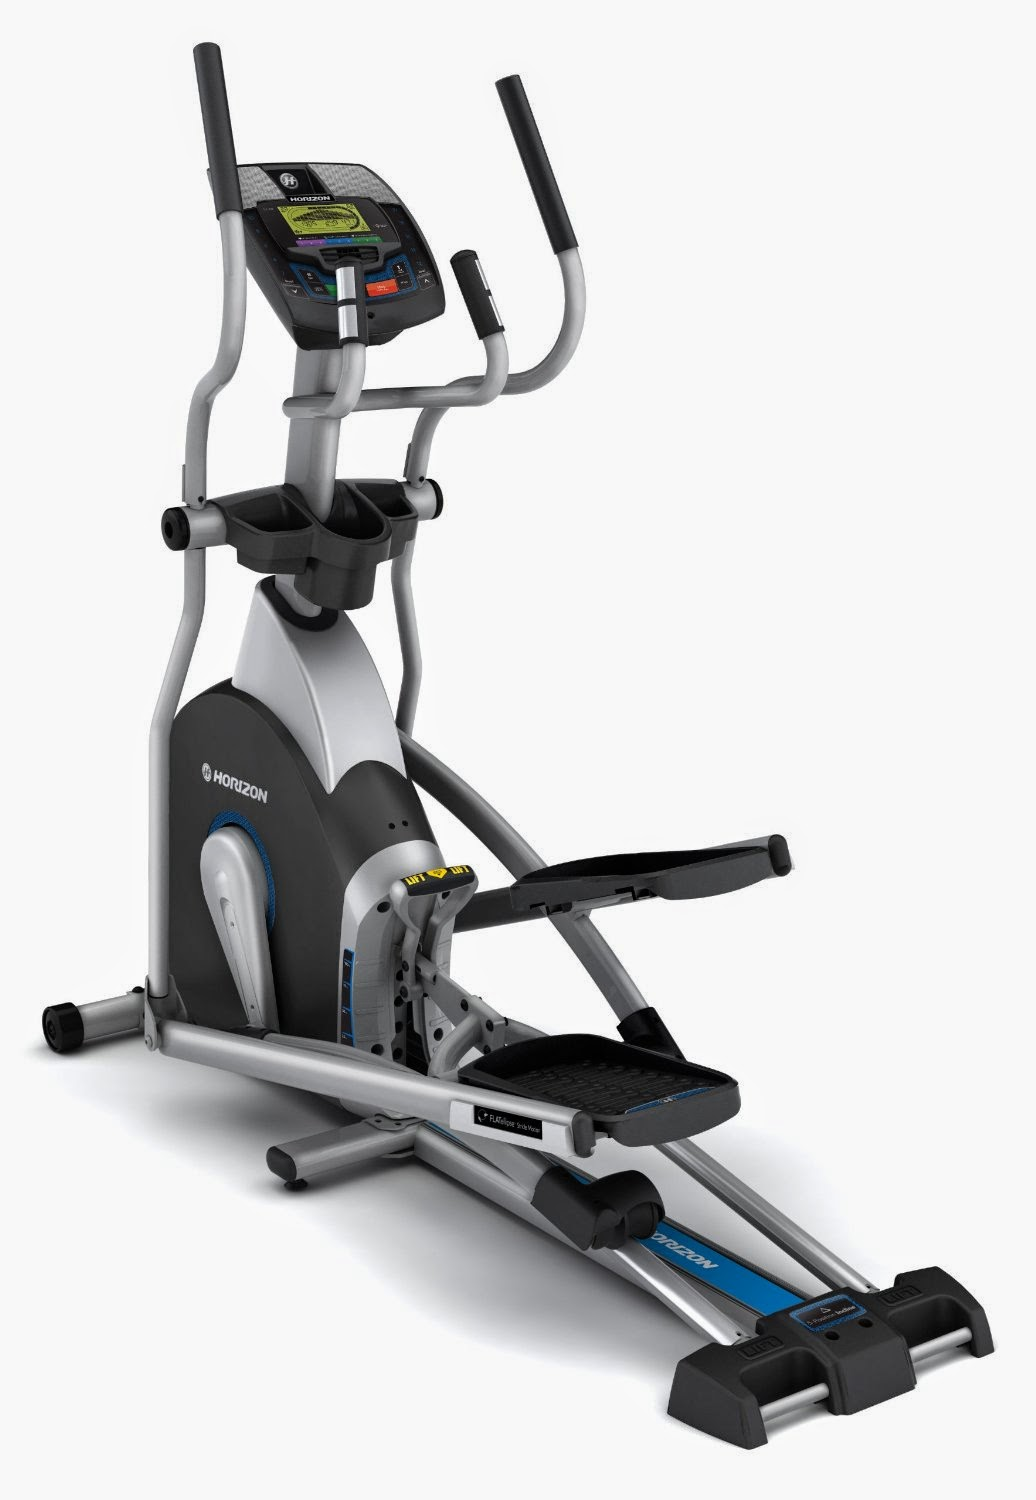 Horizon Fitness EX 69 2 Elliptical Trainer, picture, review features & specifications plus compare with EX 59 2